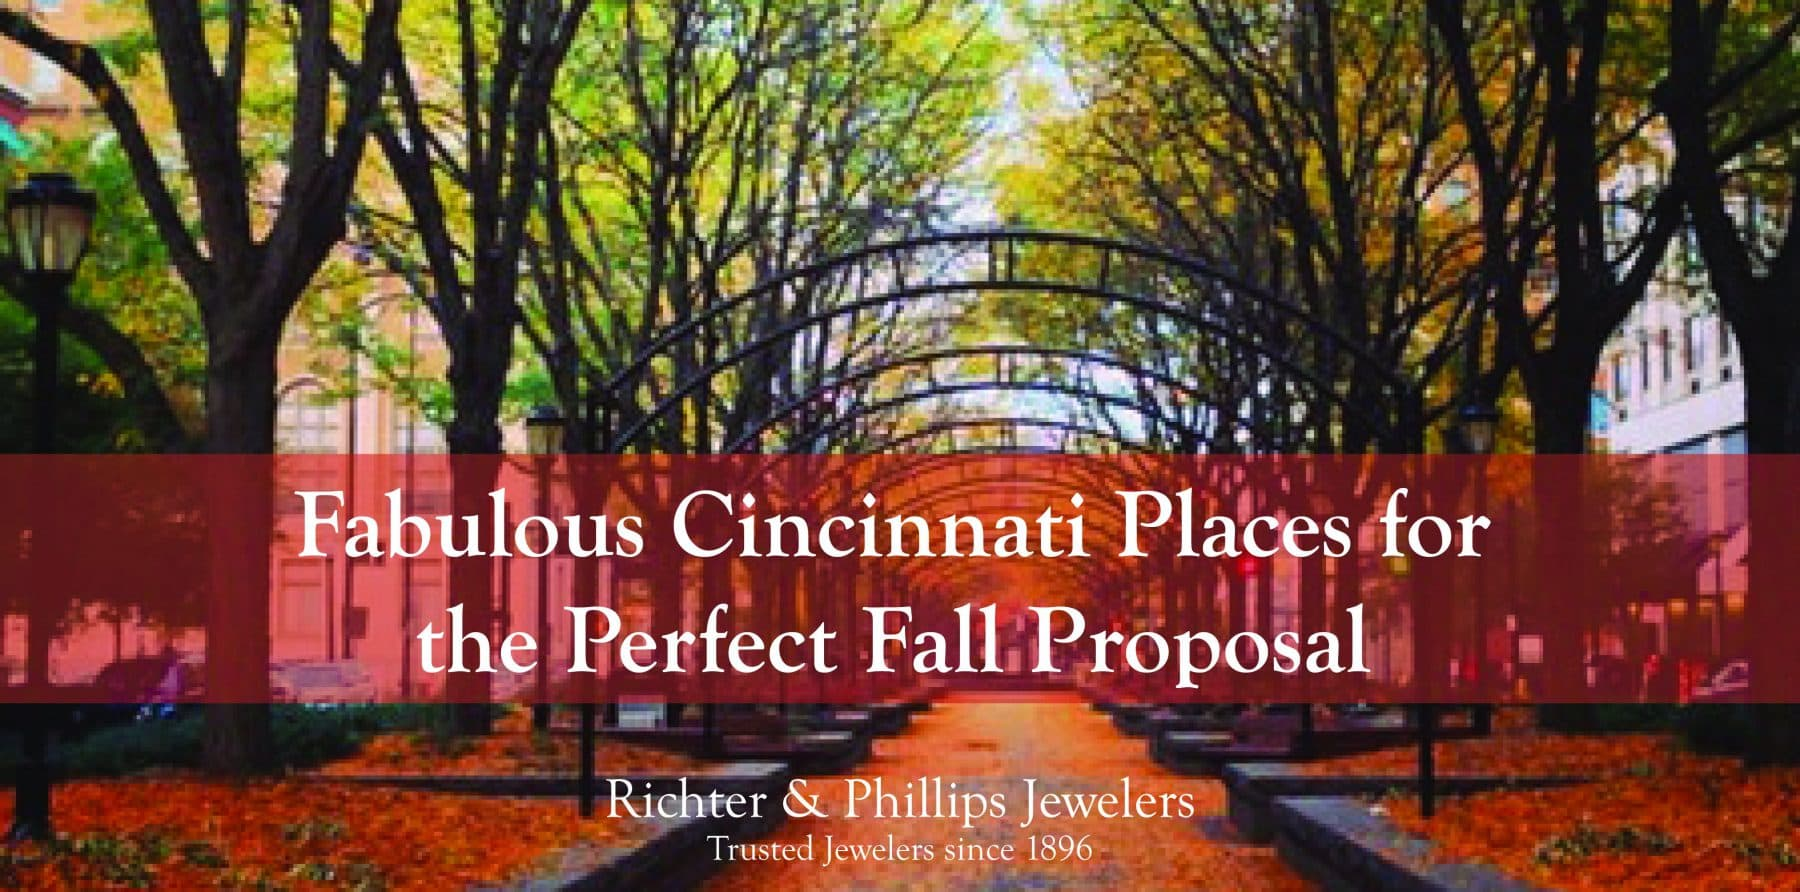 4 fabulous places for the perfect fall proposal